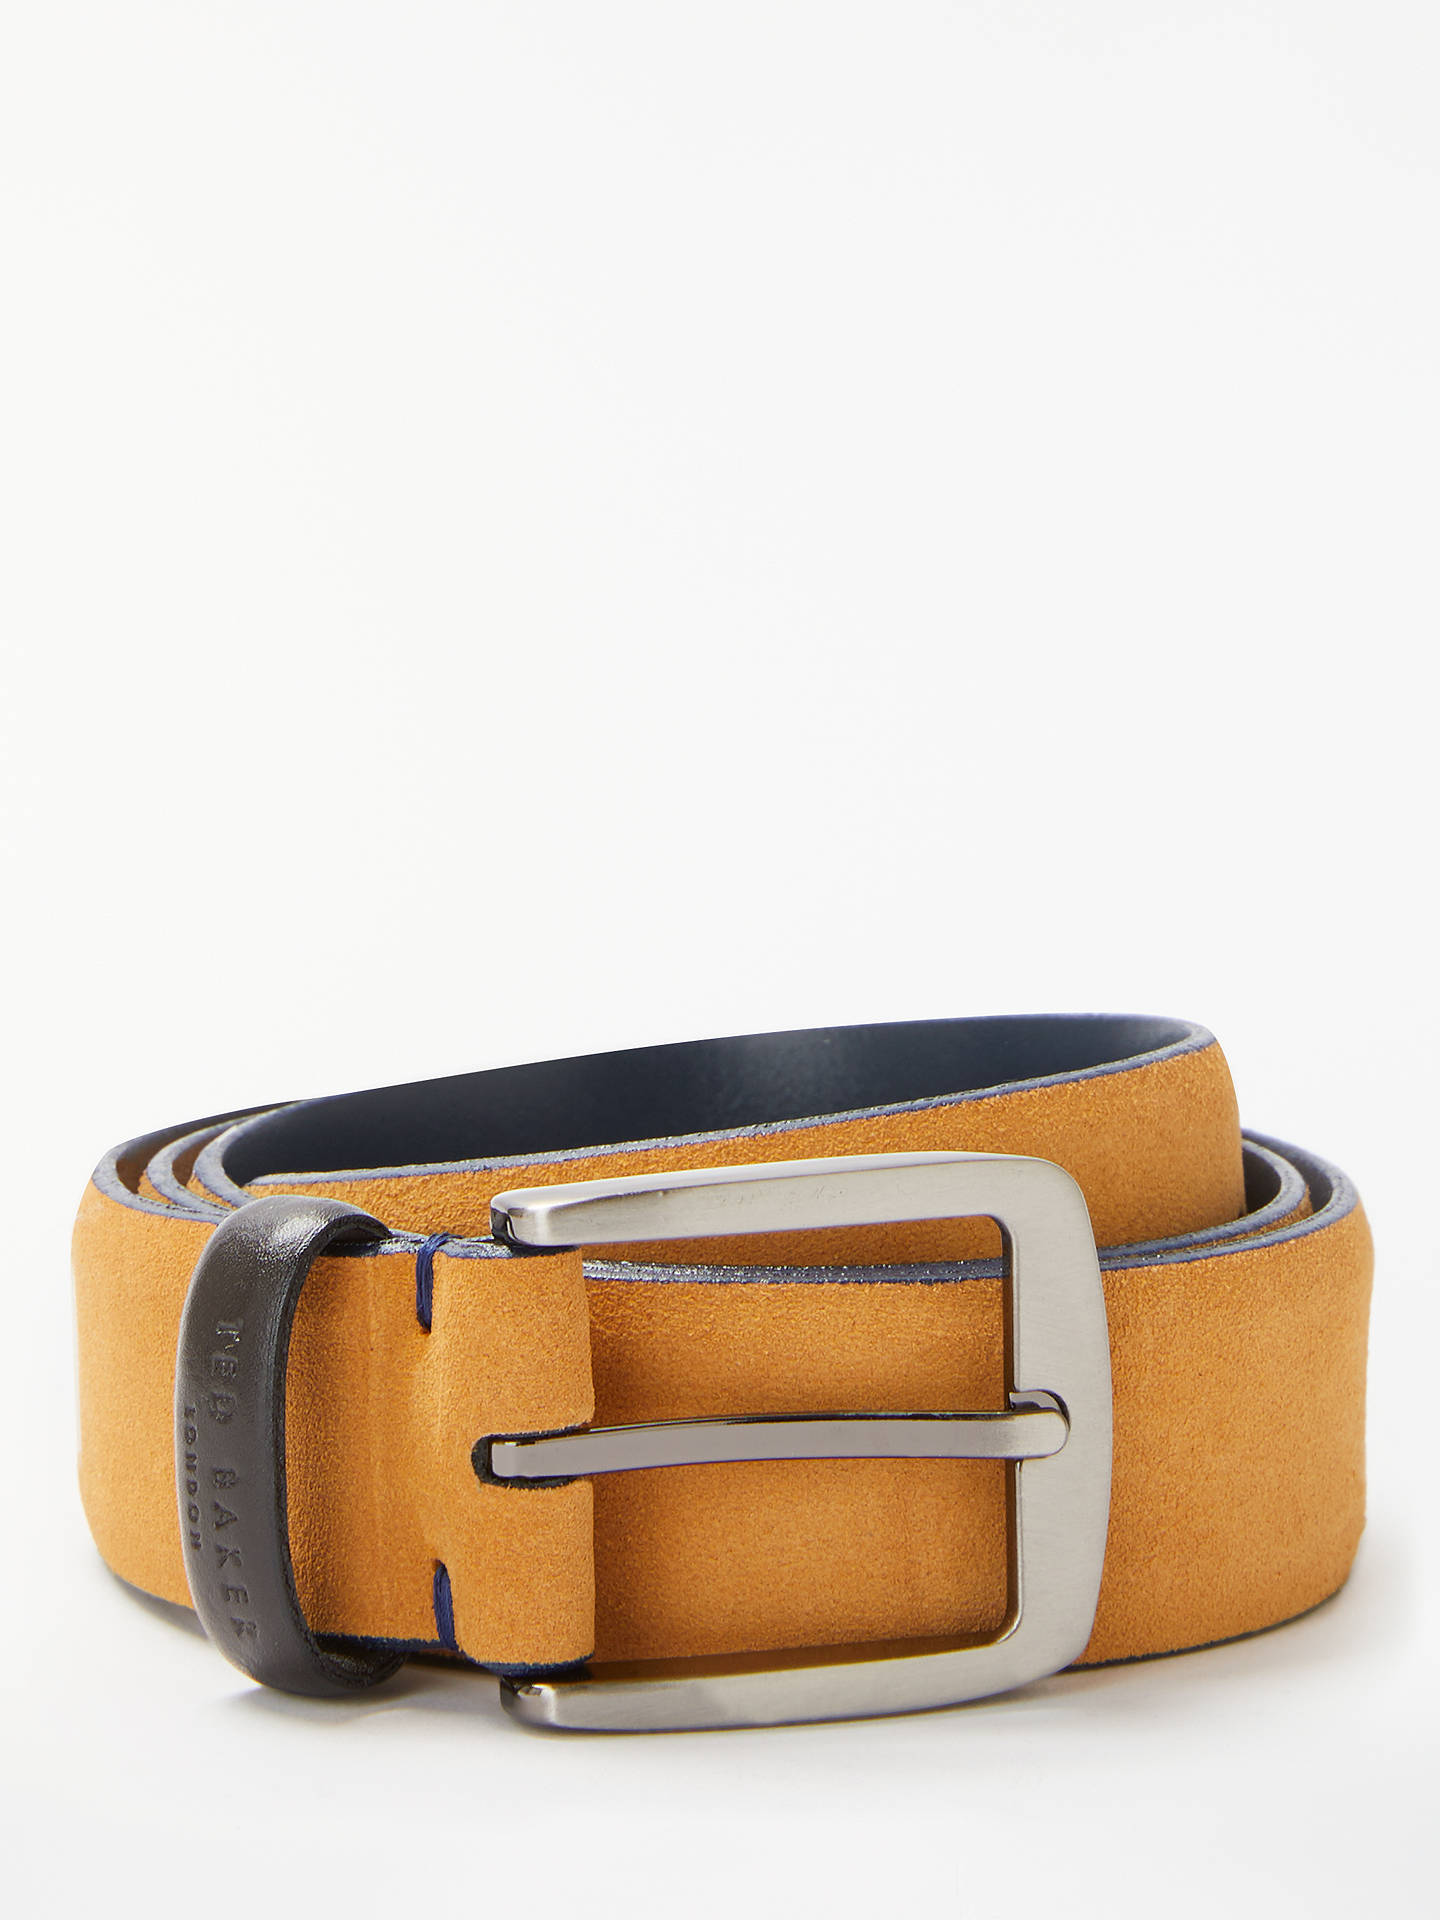 ad2f39fa4c58 Buy Ted Baker Chatts Suede Belt